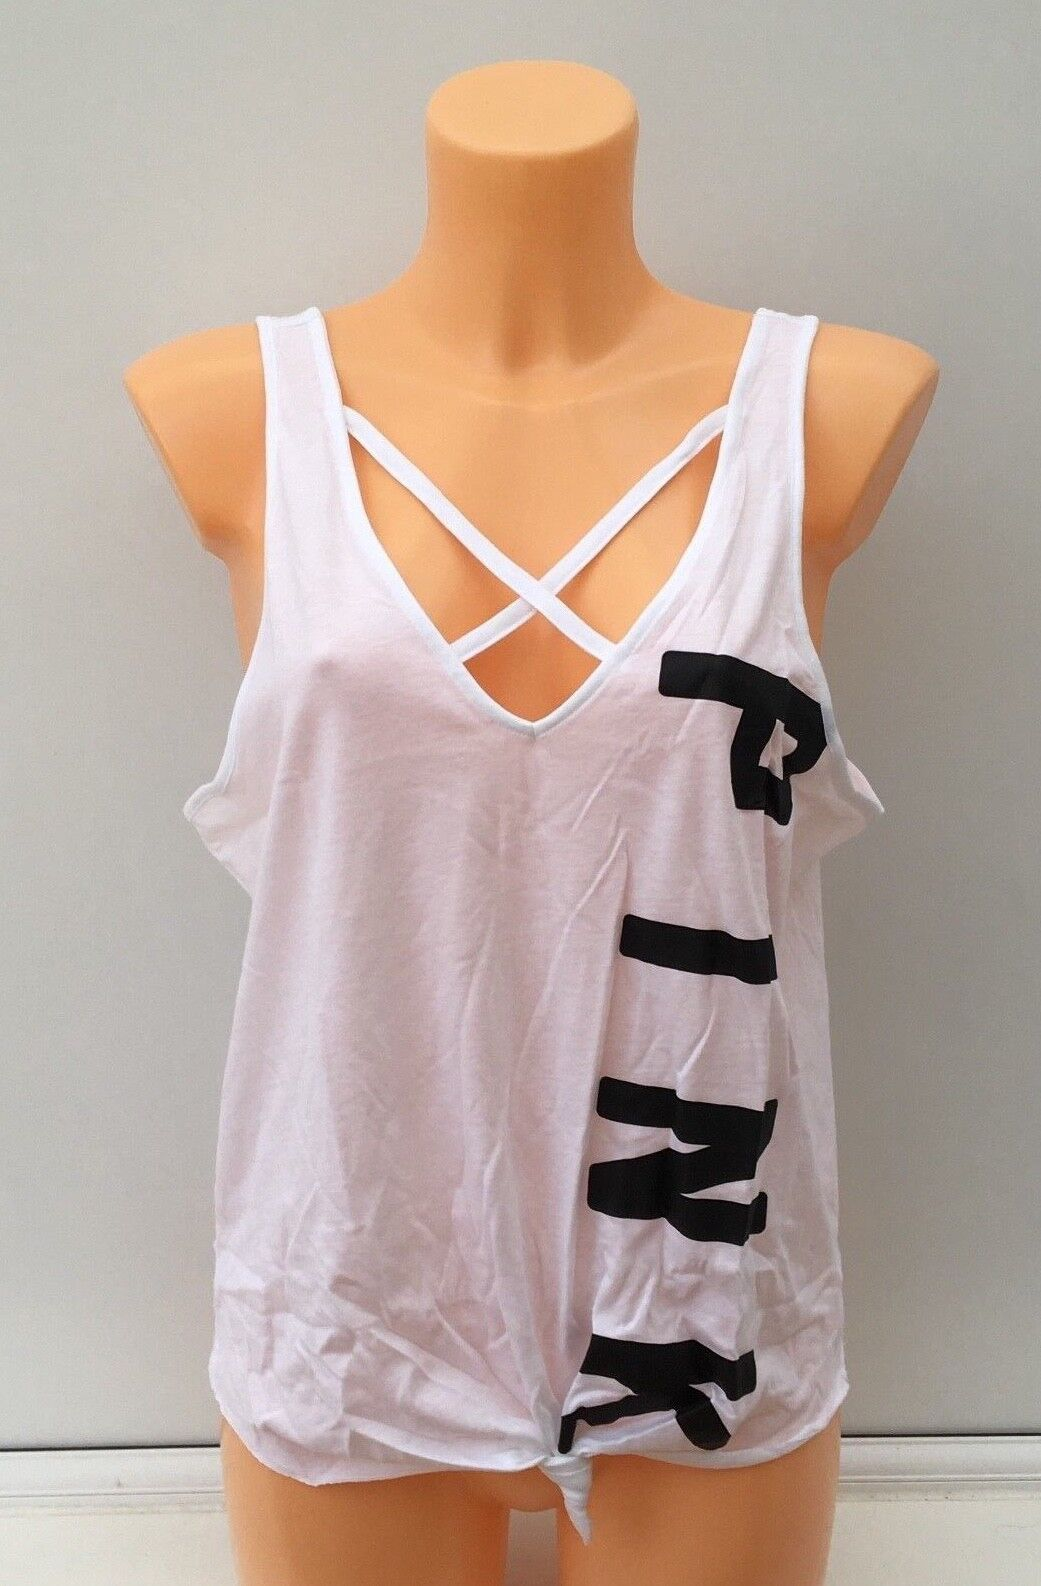 VICTORIA'S SECRET VS PINK Graphic Sleeveless Knotted Tee in White Size L BNIB